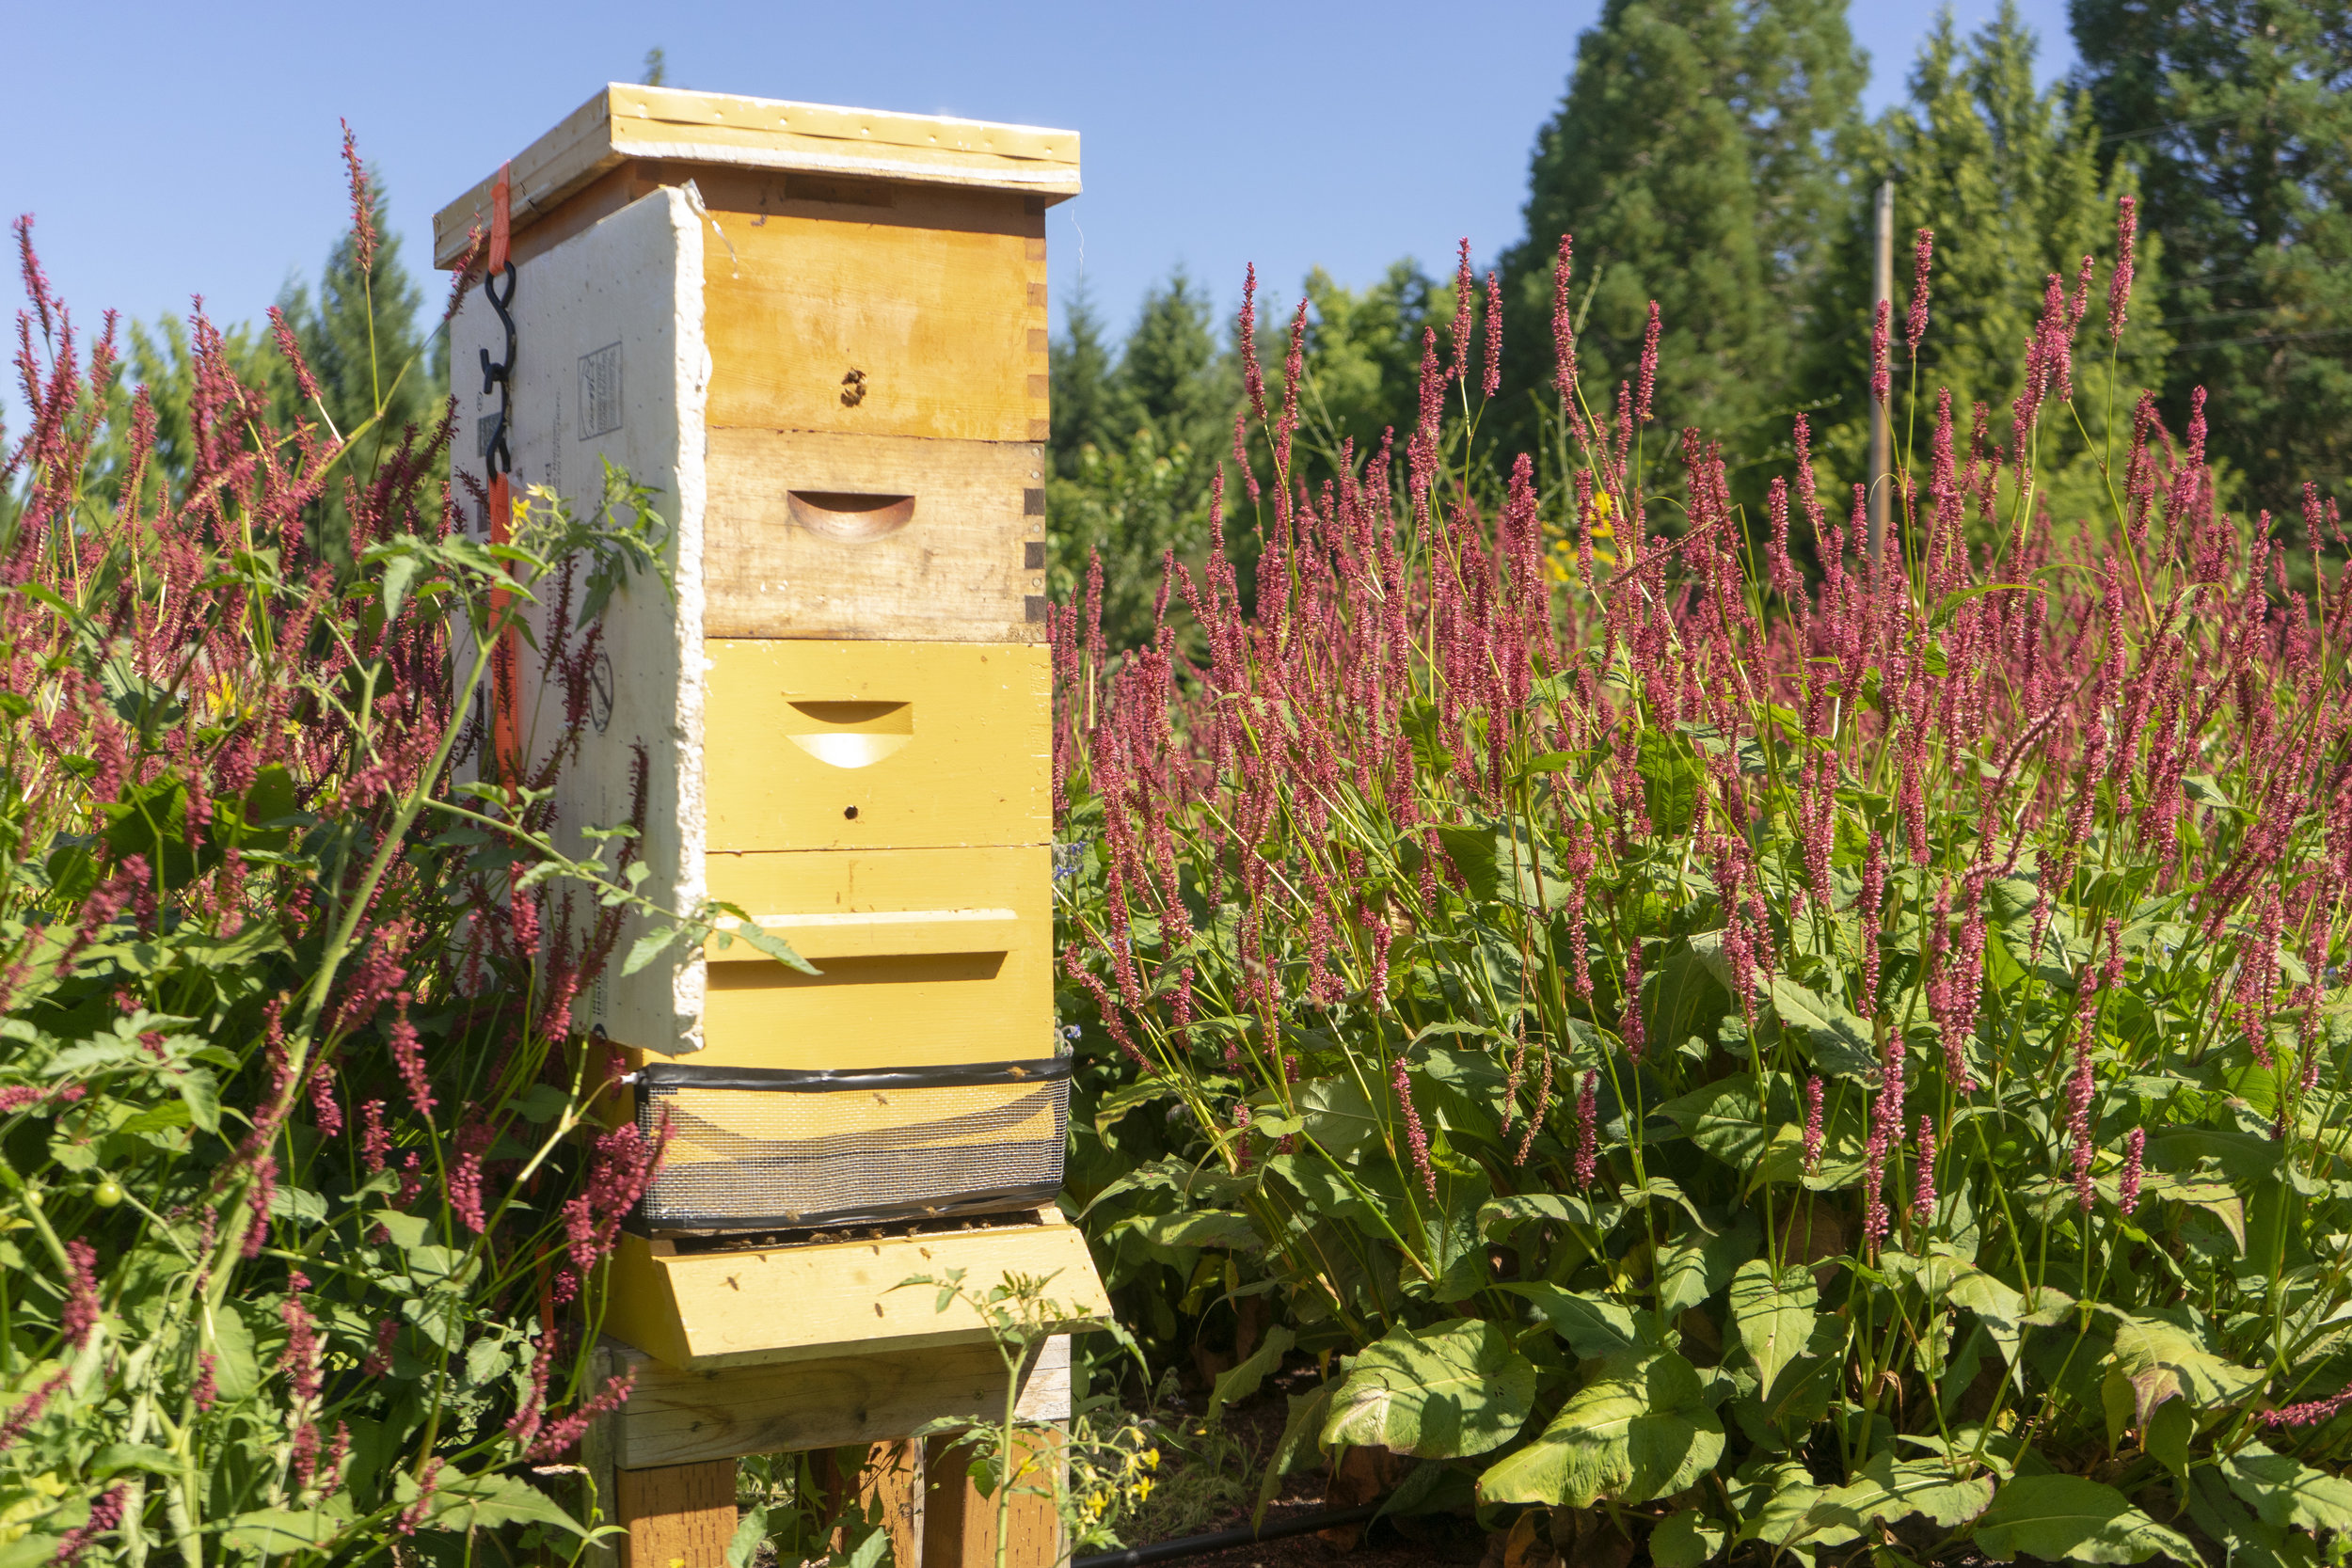 One of several bee colonies that Pam keeps around her farm. Pam is an Oregon Master Beekeeper.